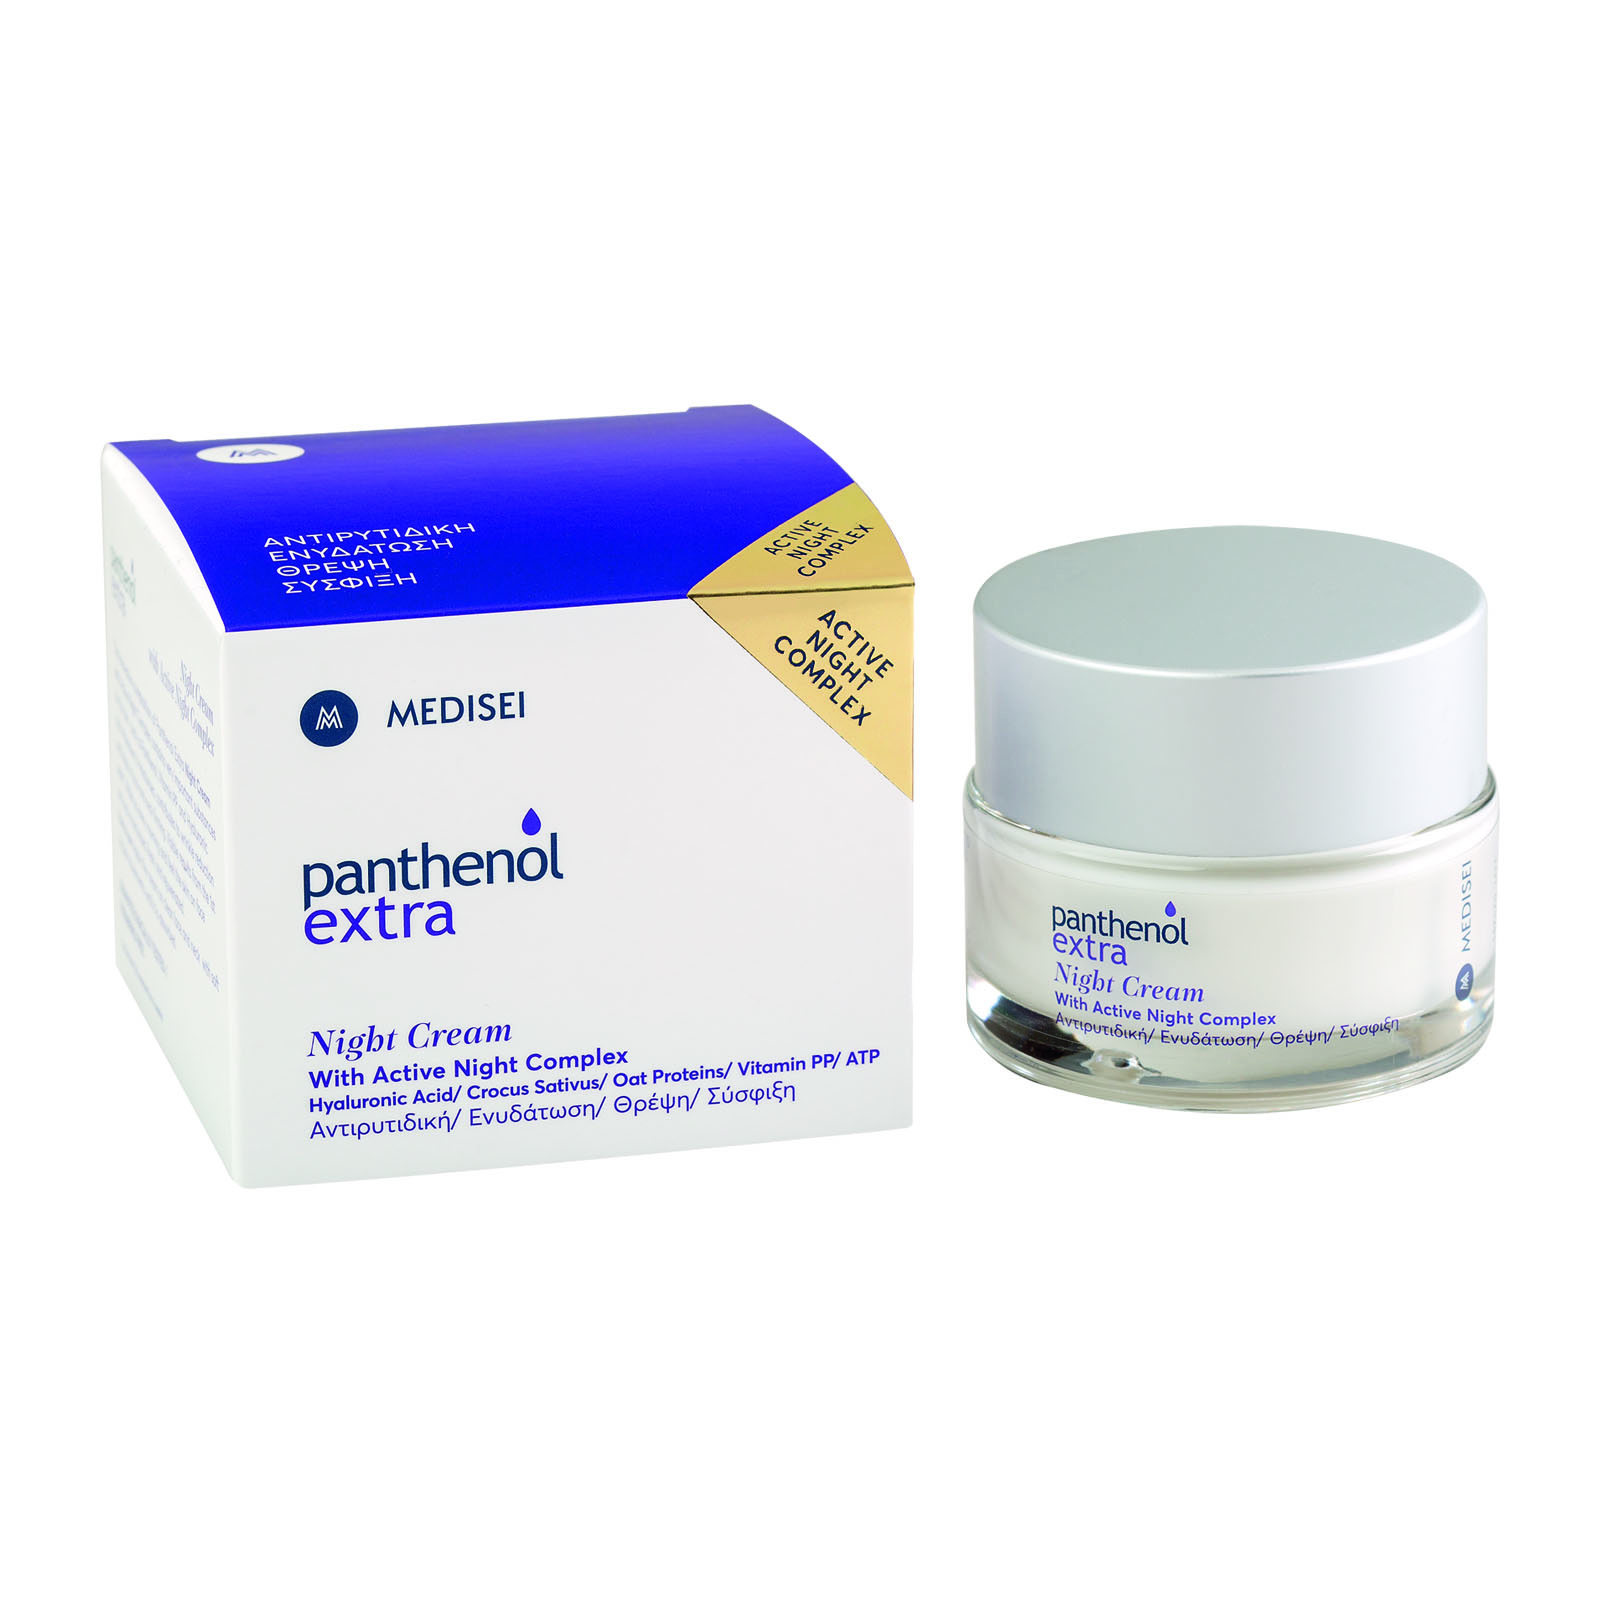 PANTHENOL EXTRA Night Cream, Κρέμα Νύχτας - 50ml